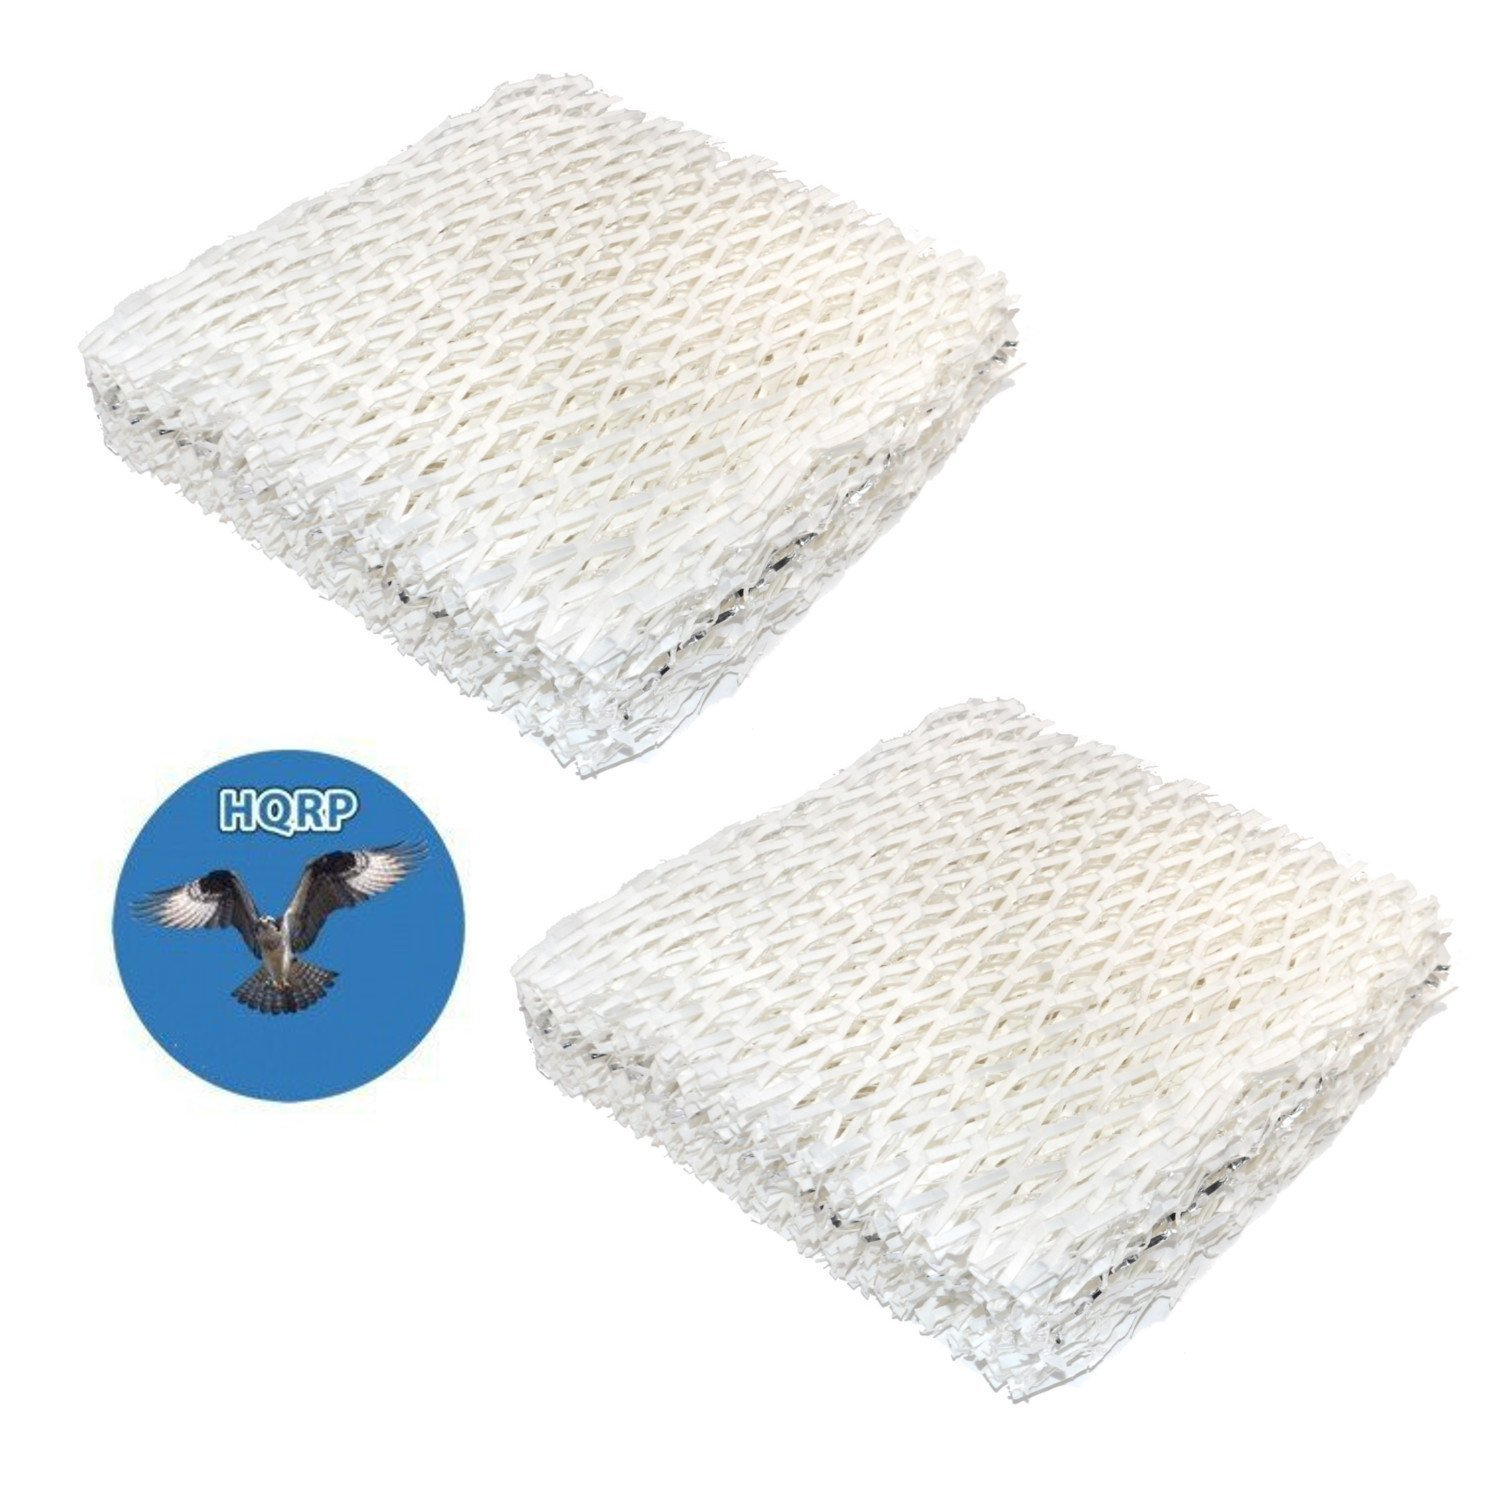 HQRP 2-pack Humidifier Wick Filter for Hunter 32300, 31913, 32350, 32500, 32501, 32505, 32507, 34500, 34997, 31915 Humidifiers + HQRP Coaster - image 3 de 3